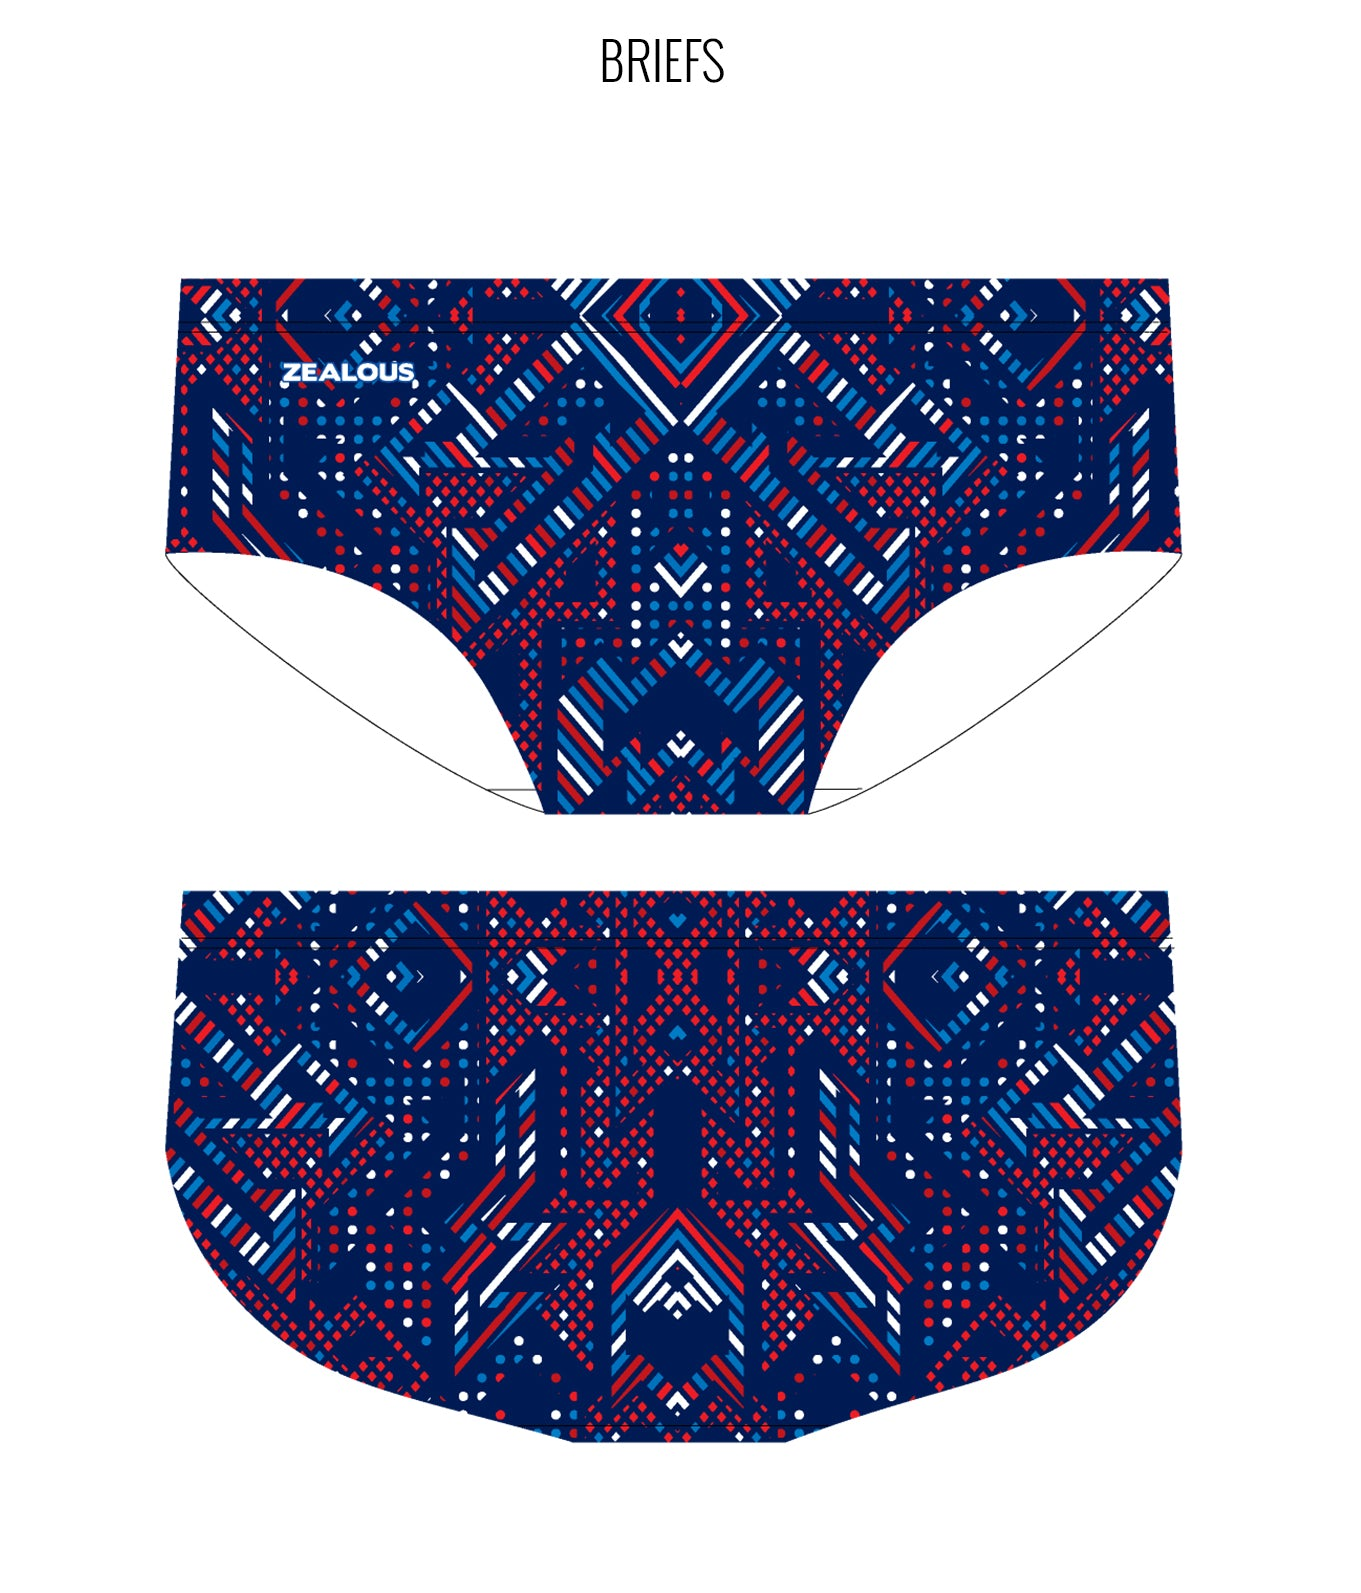 AZTEC {BLUE/RED) - MALE Personalised Swimwear - Shop Zealous Training Swimwear